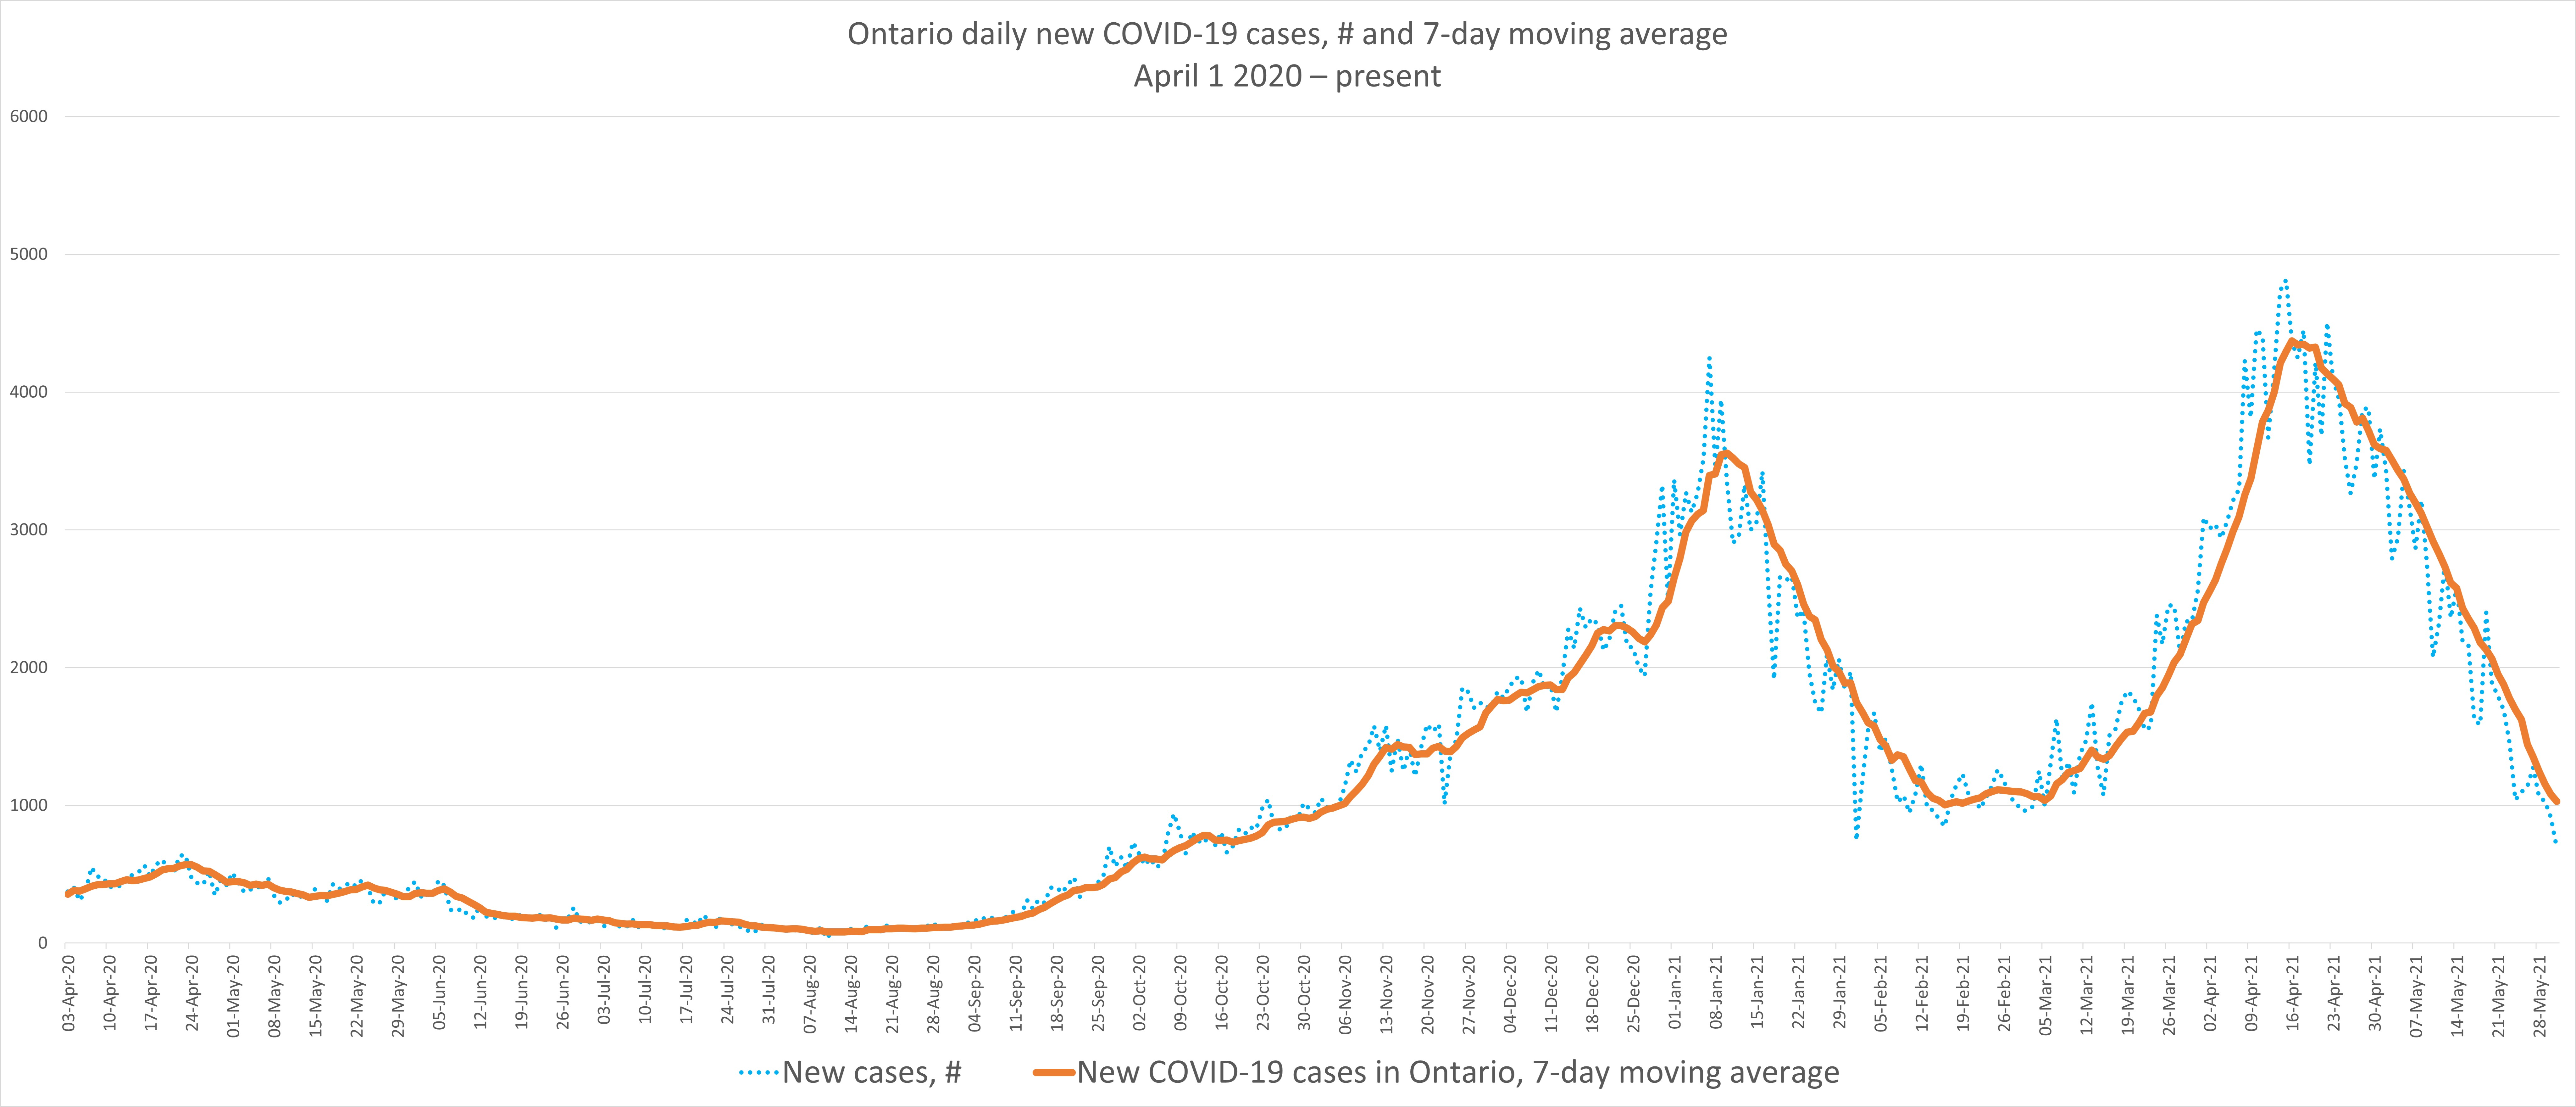 Graph showing COVID-19 data in Ontario